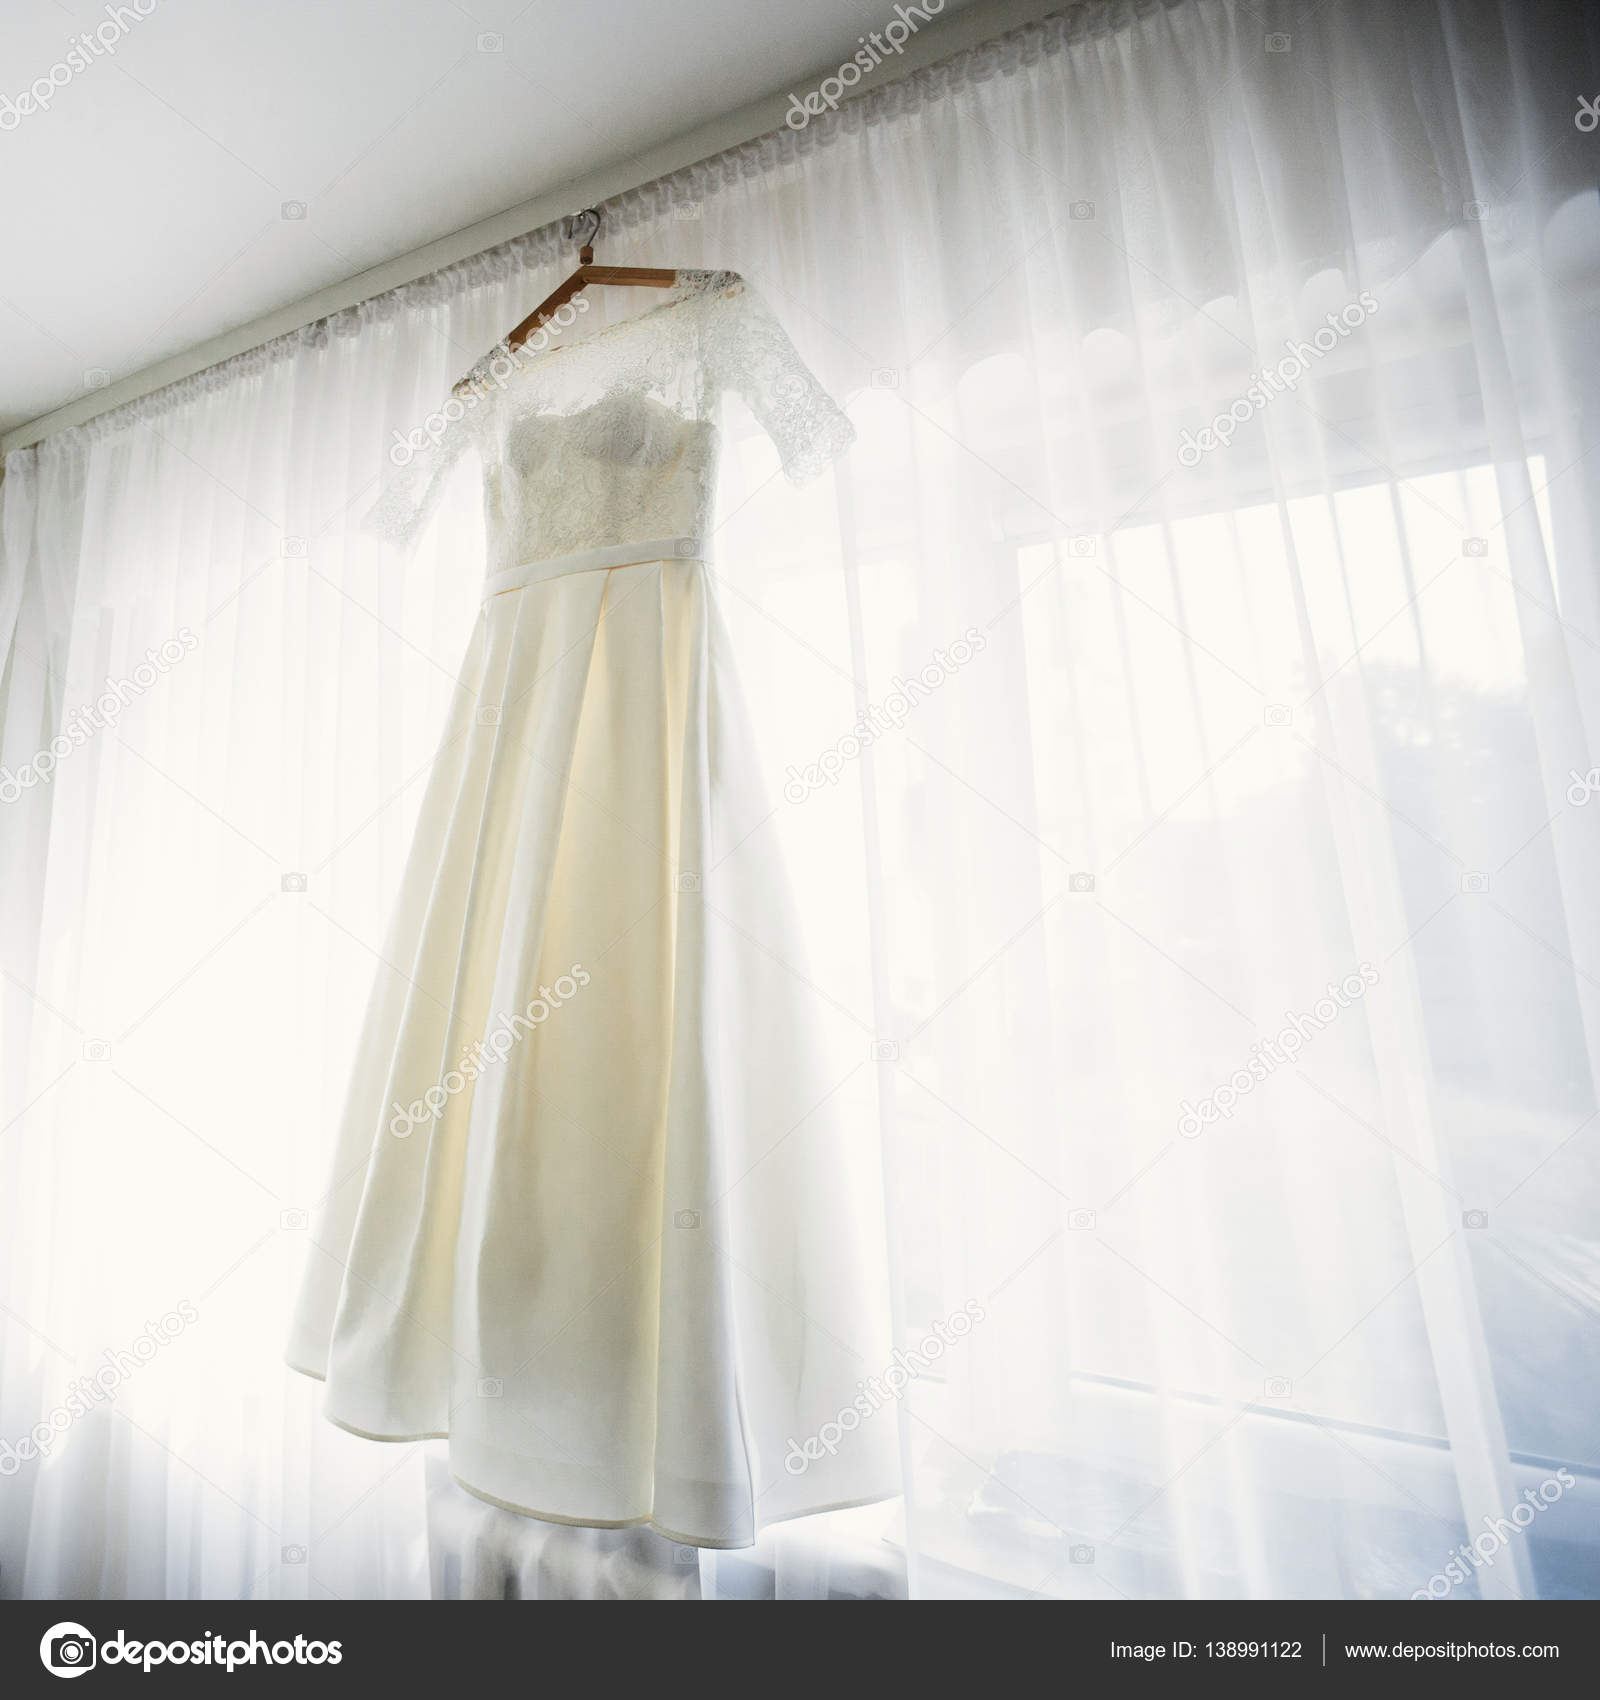 5d35076640a Lace bridal gown by window — Stock Photo © olexiysyrotkin  138991122